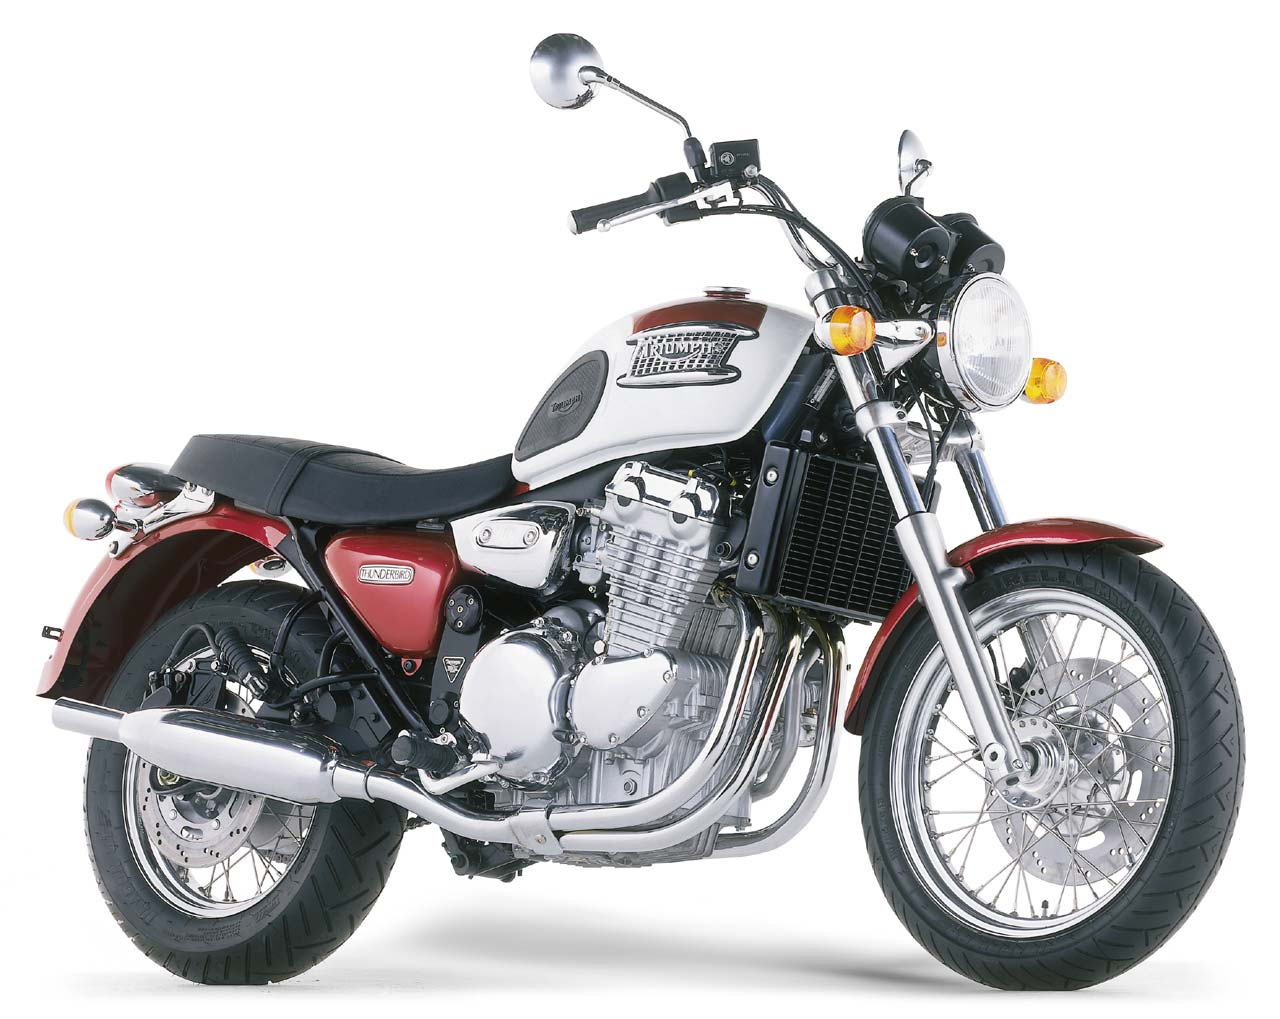 Triumph Adventurer 1999 images #125180